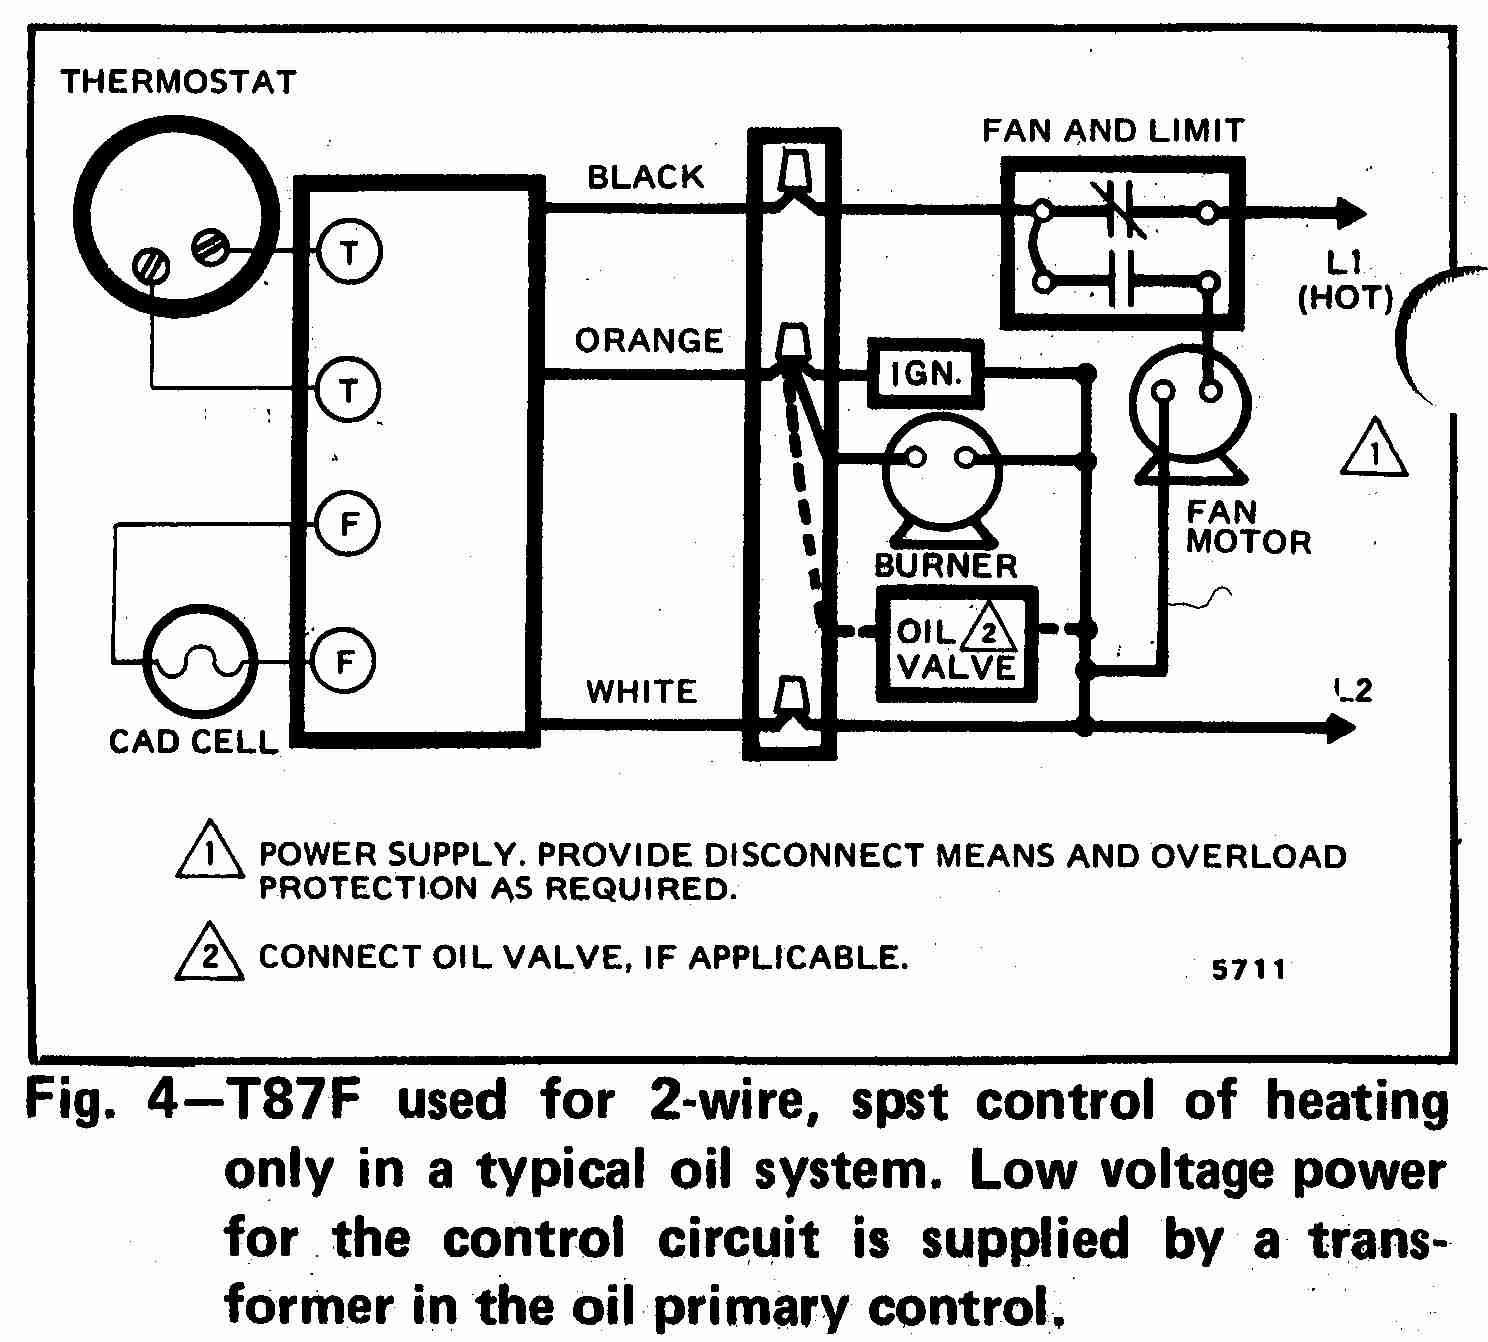 DIAGRAM] 10 Kw Williams Wall Furnace Wiring Diagram FULL Version HD Quality Wiring  Diagram - DIAGRAMMAN.FEDERPERITI.IT | Williams Wall Furnace Control Wiring Diagram |  | diagramman.federperiti.it